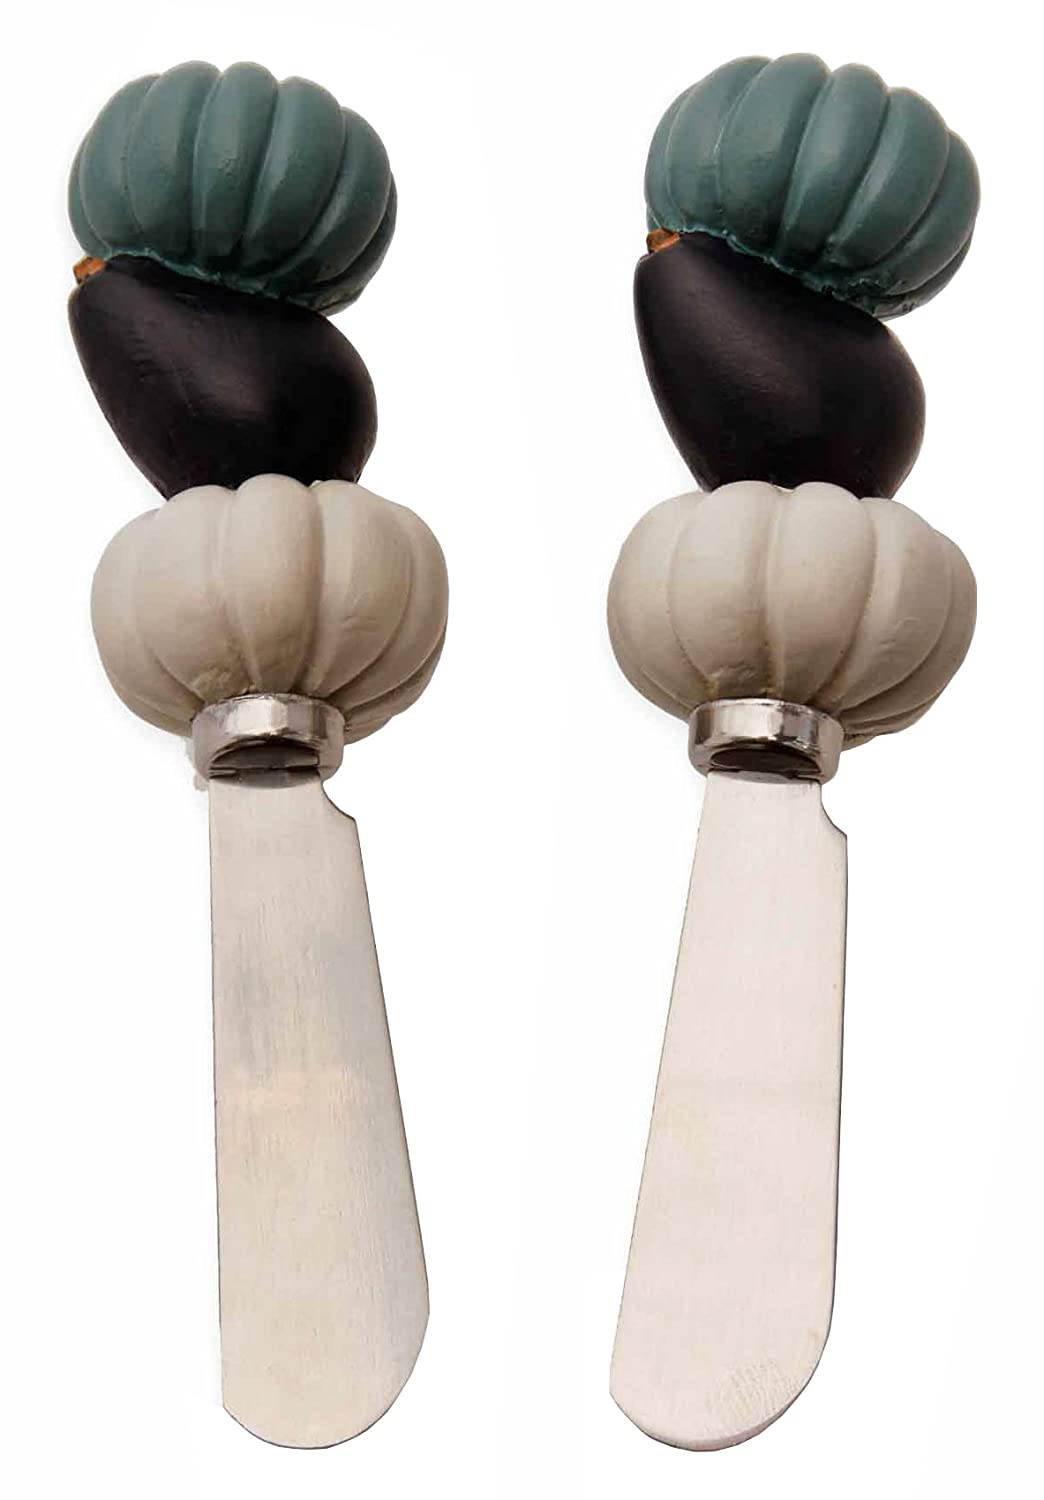 Boston International Pumpkin Spreaders, Set of 2, Multicolored BIP14038